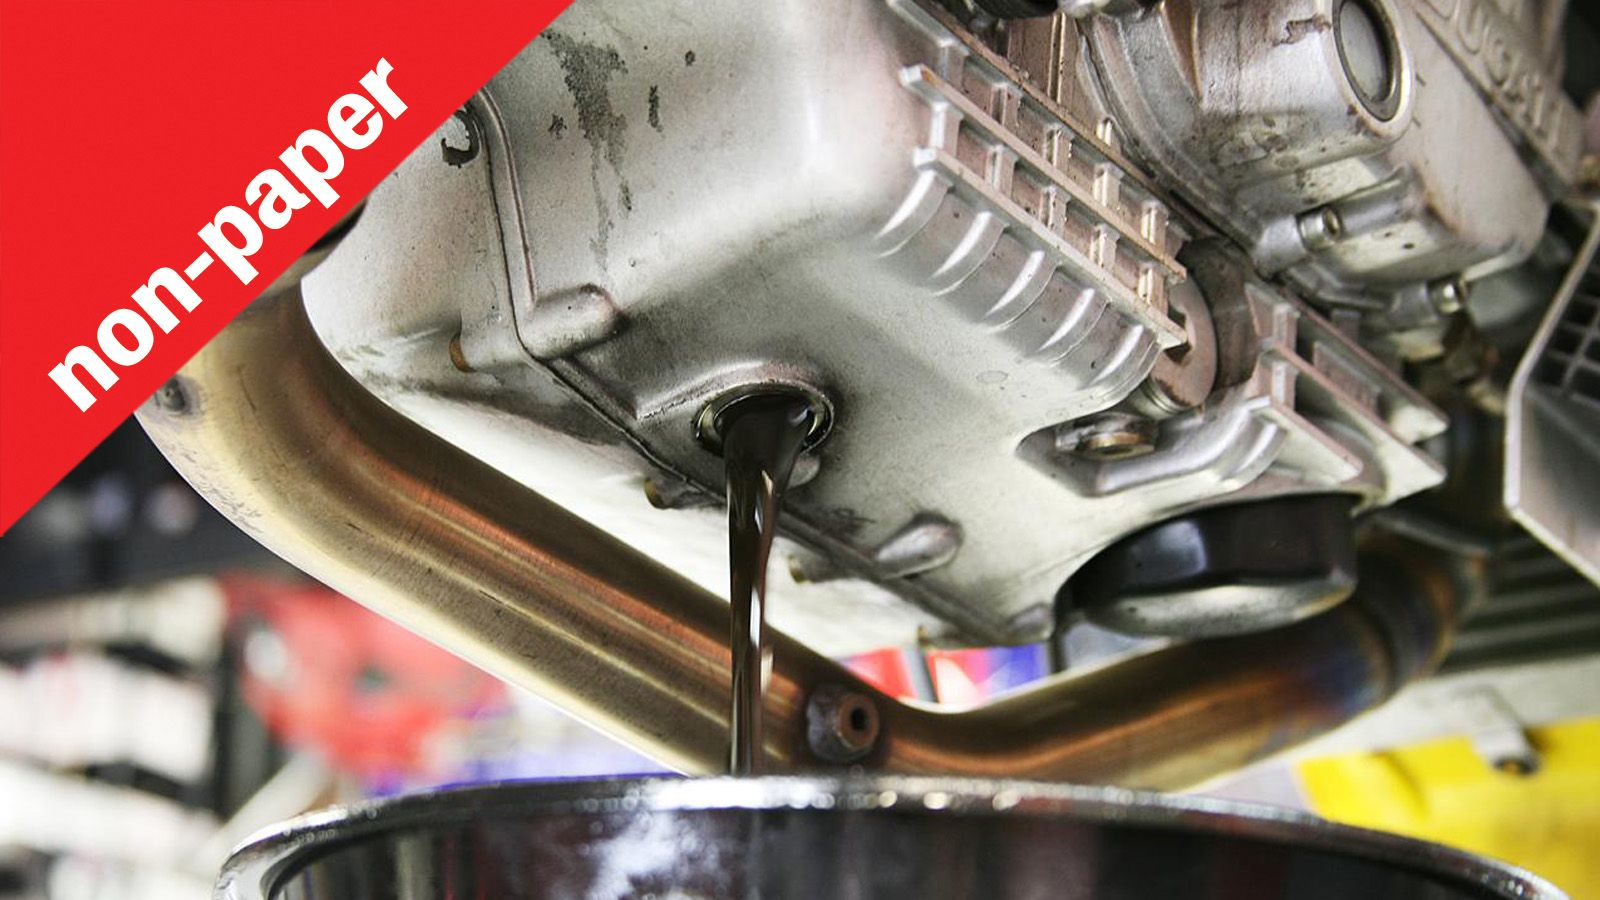 Changing Oil in Your Car Made Simple